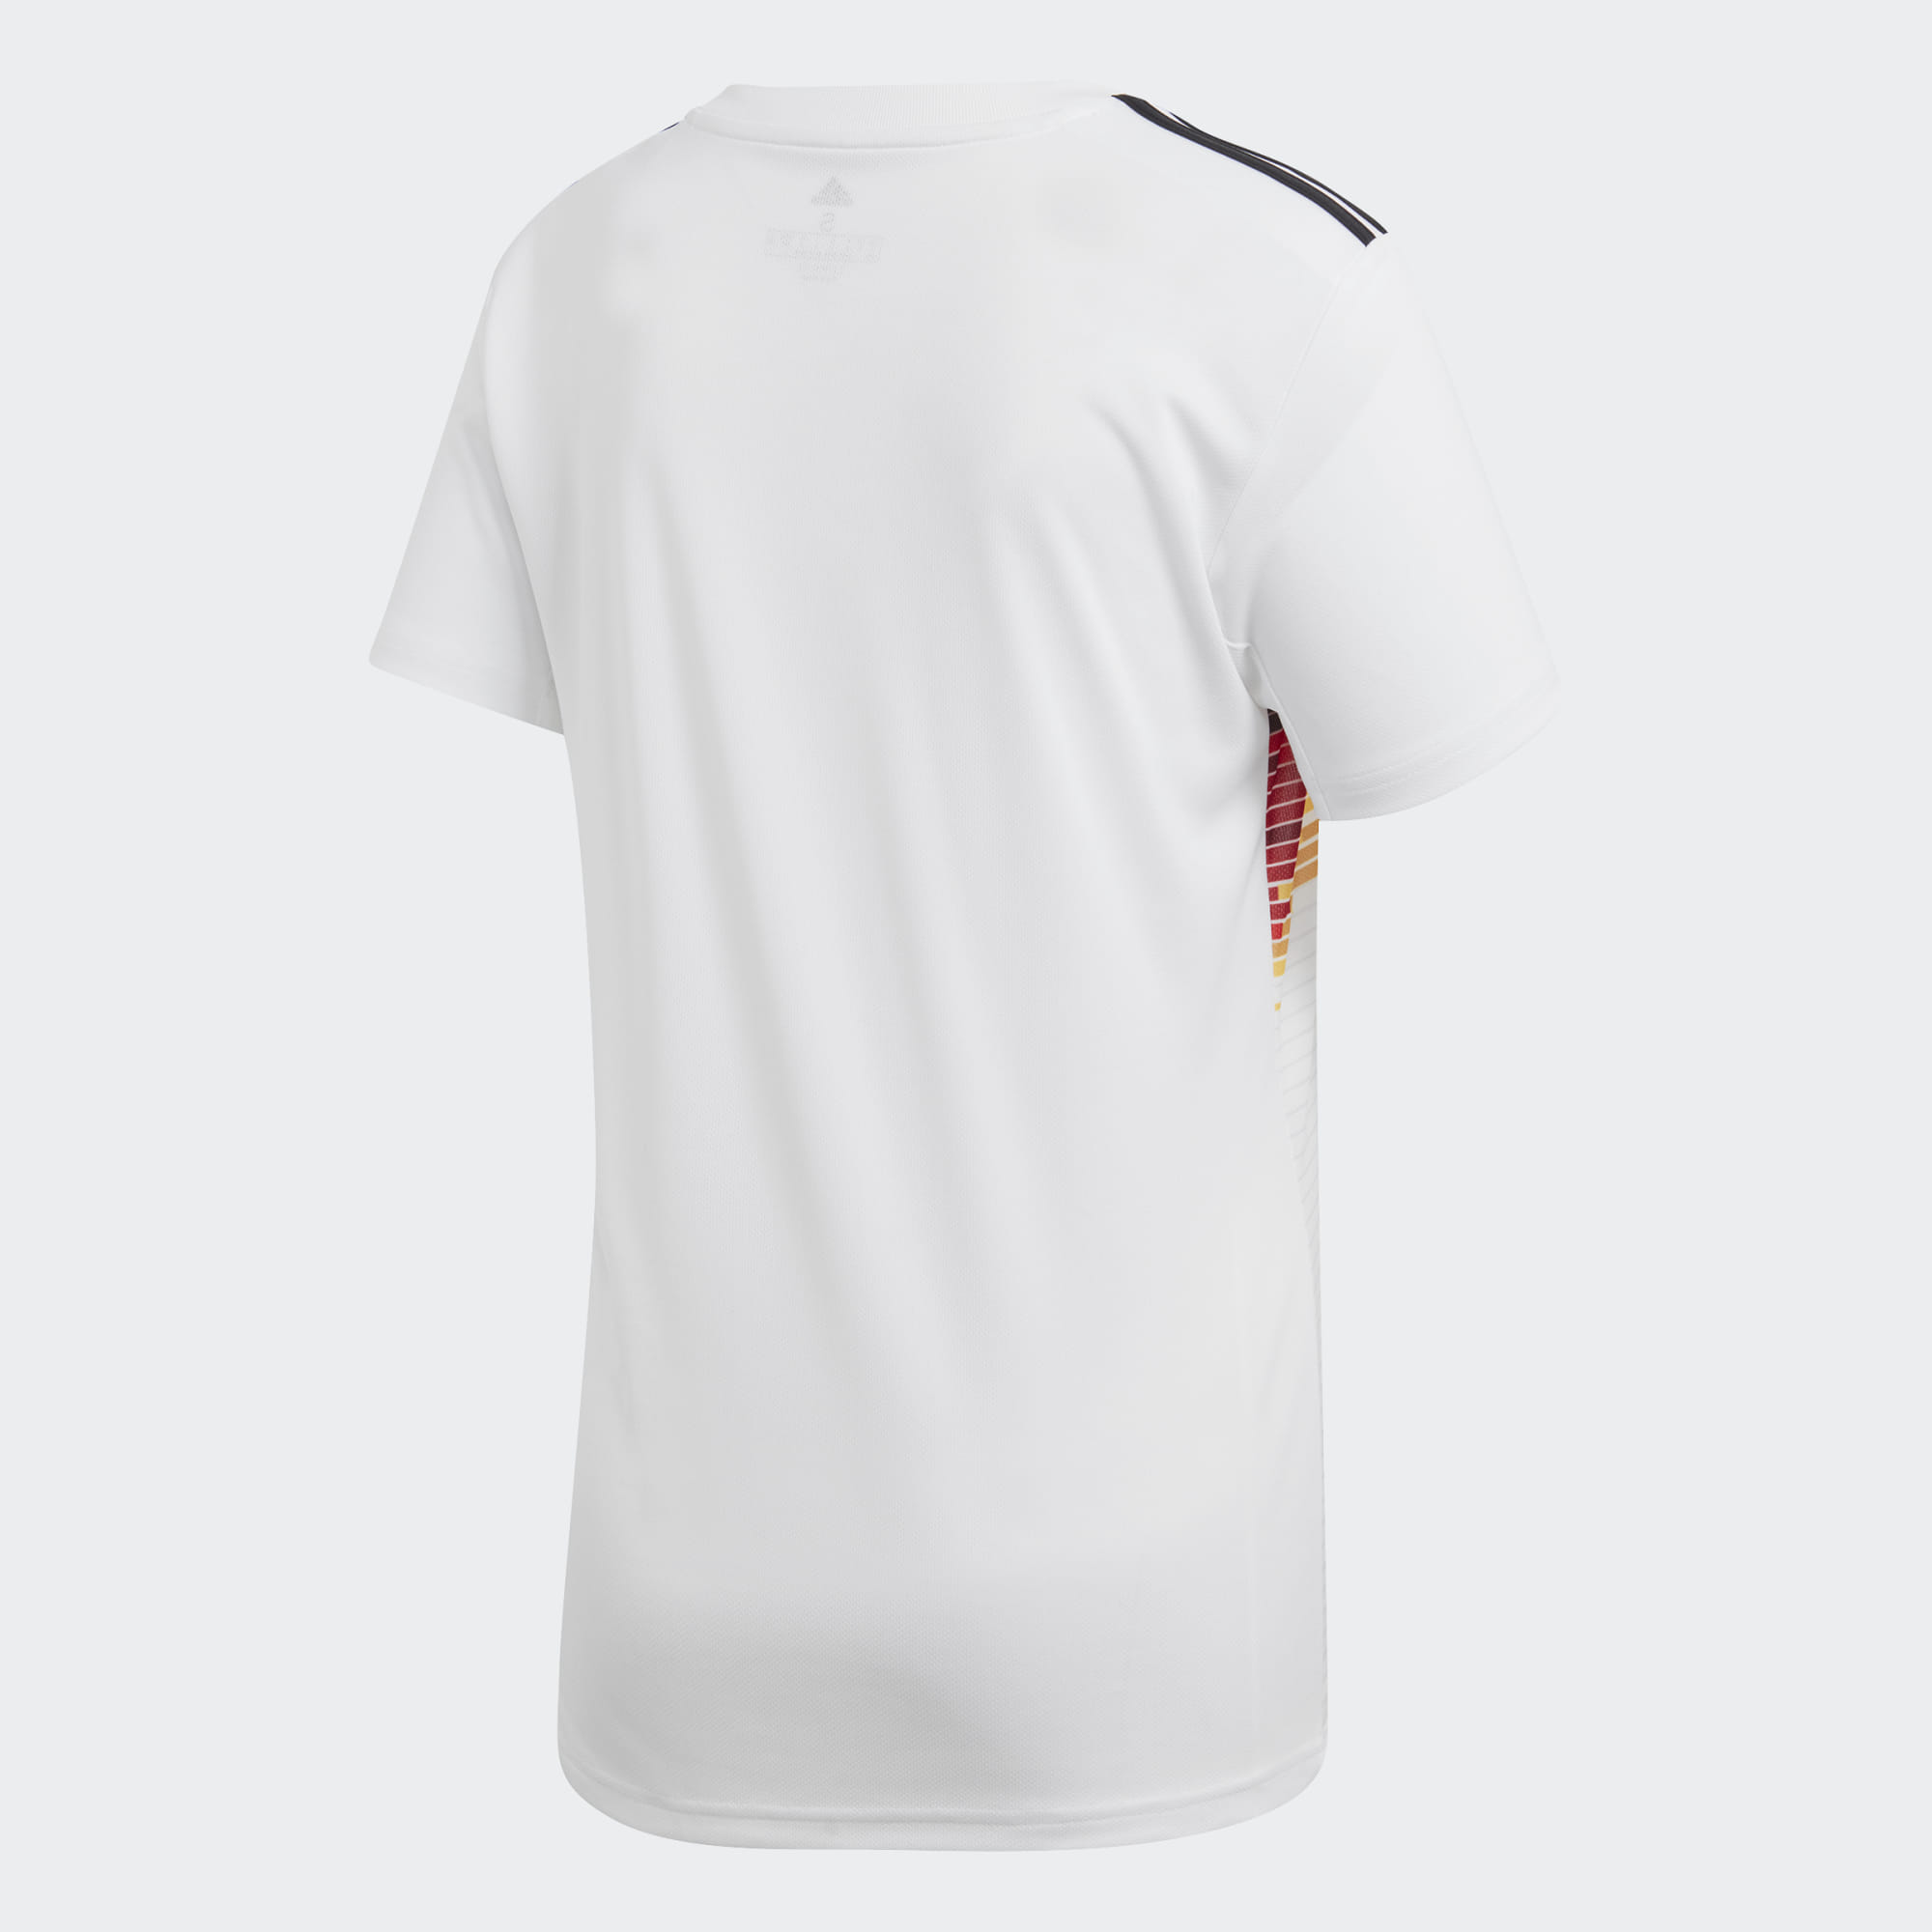 36892152b2c ... Click to enlarge image  germany 2019 womens world cup adidas home kit 7a.jpg ...